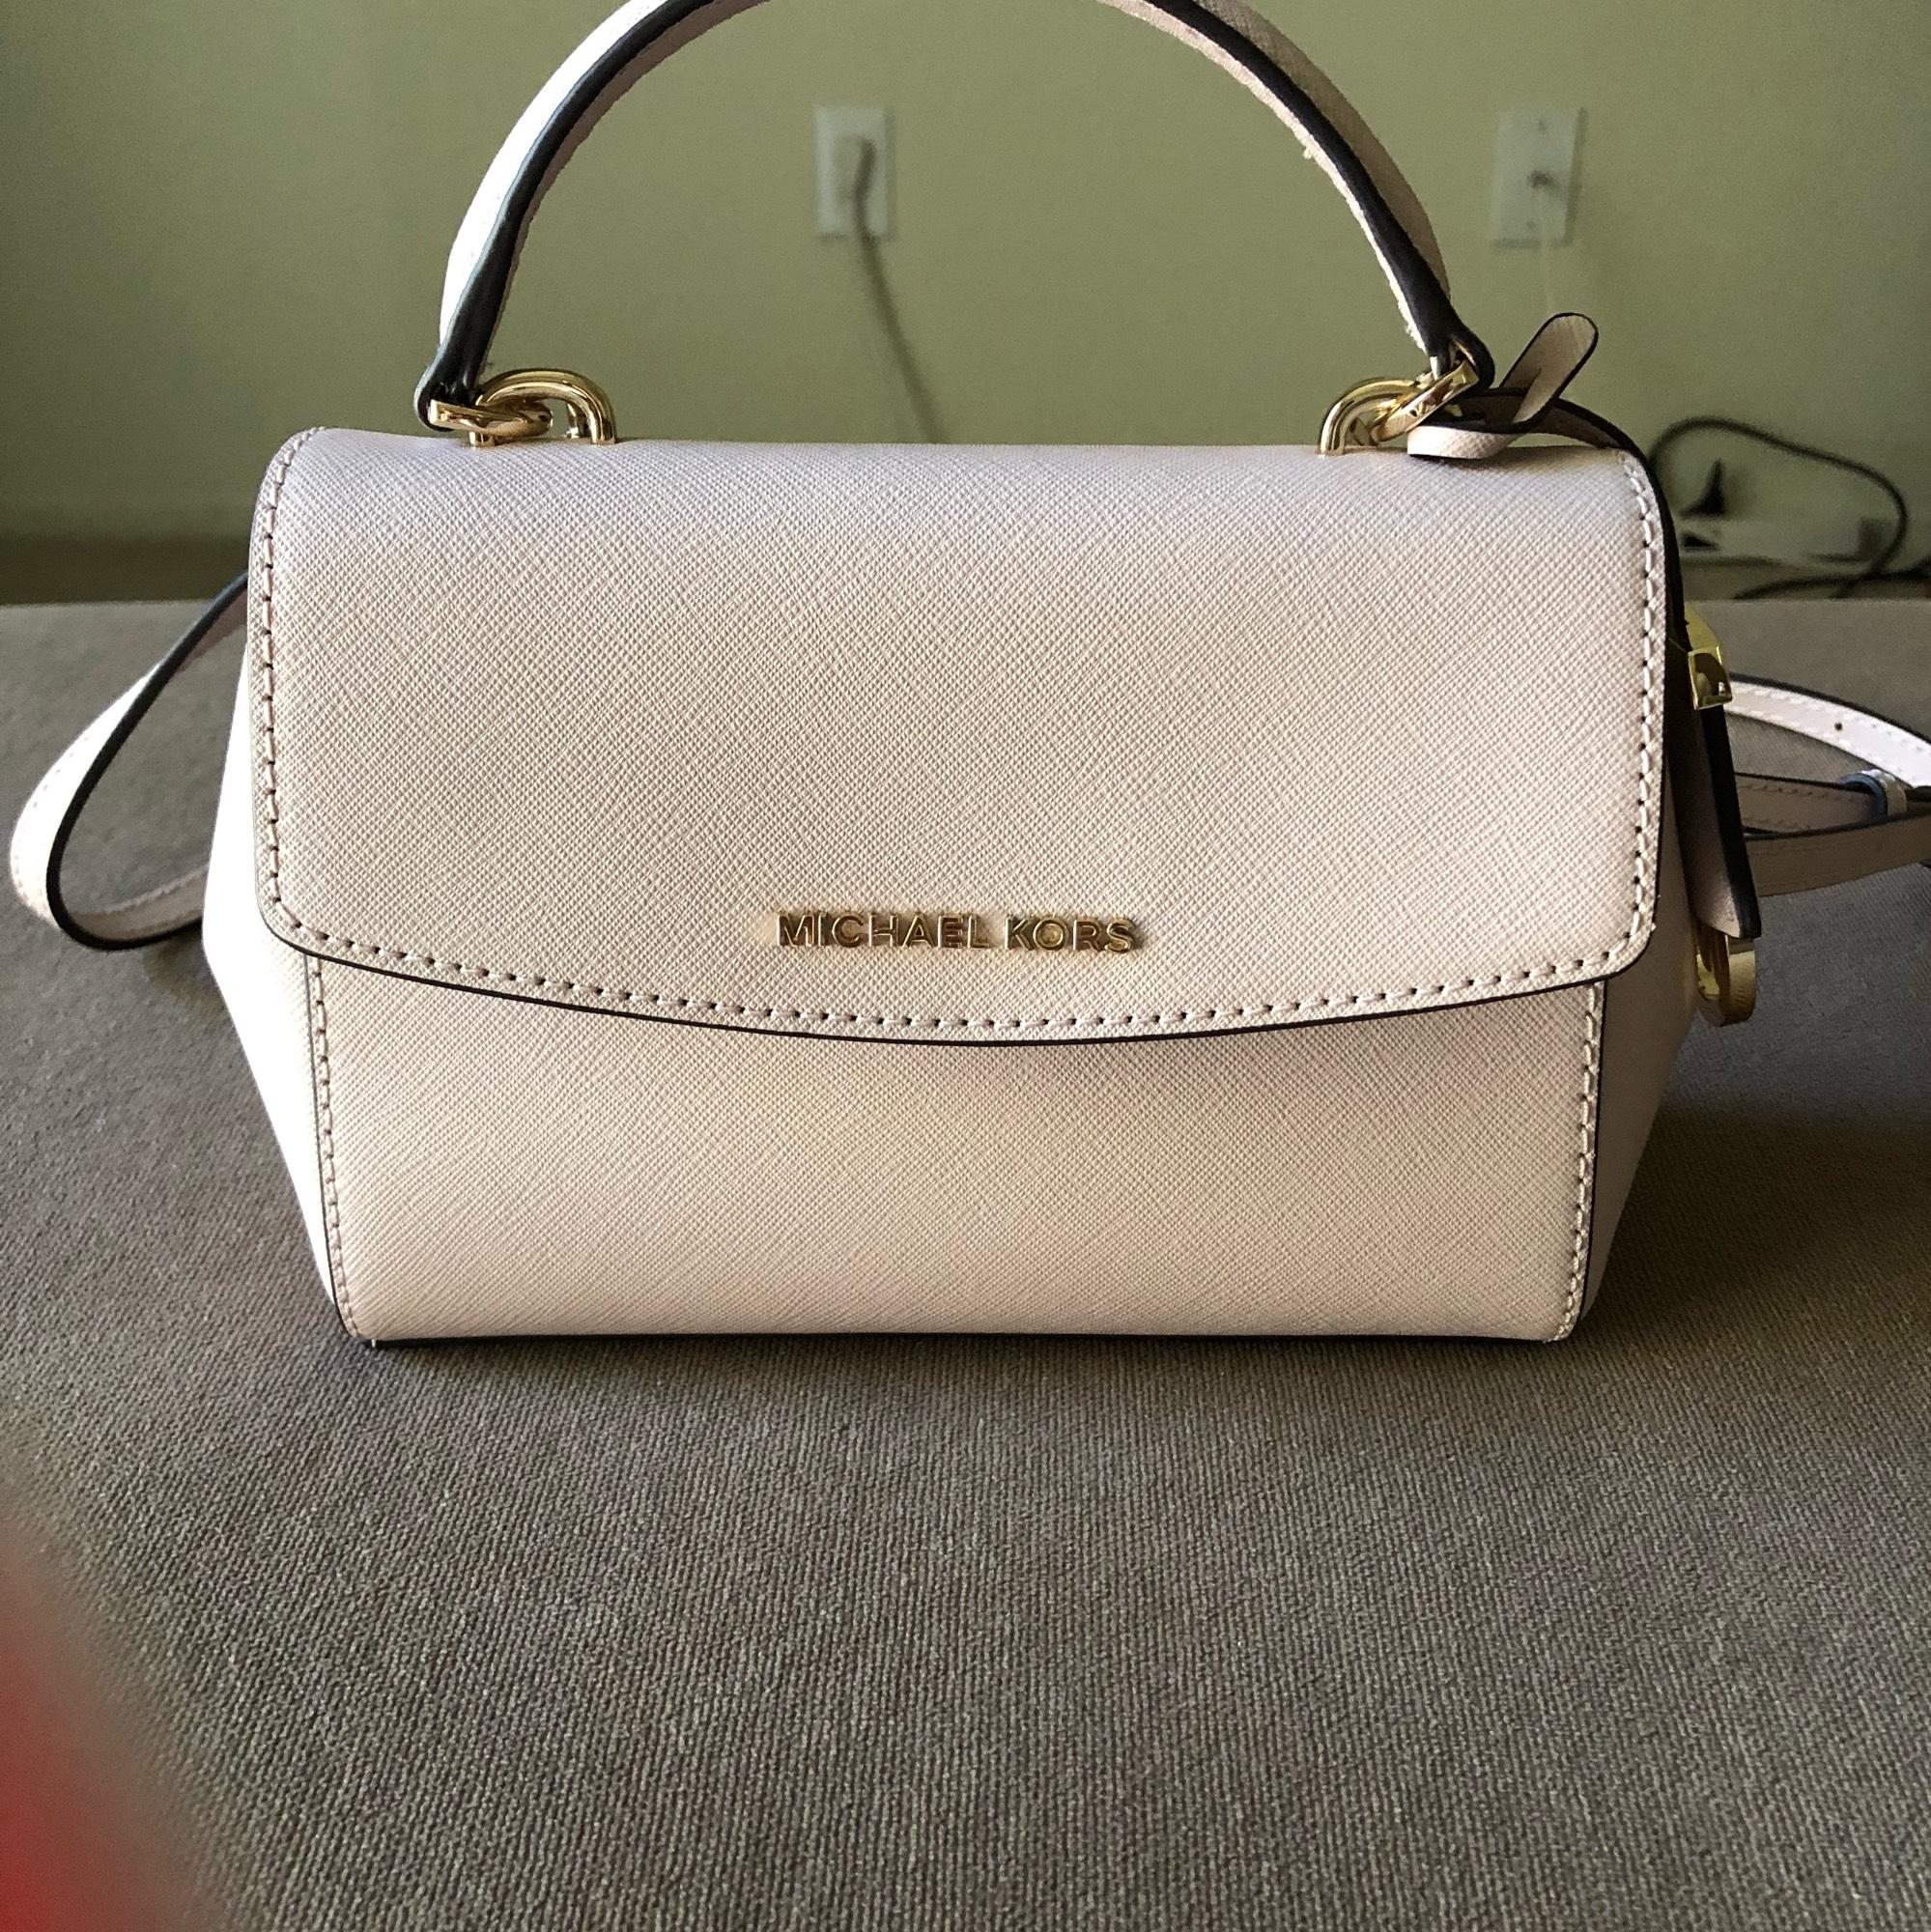 0cd18bc987a5 ... best price michael kors mk ava xsmall soft baby pink saffiano leather  cross body bag sale